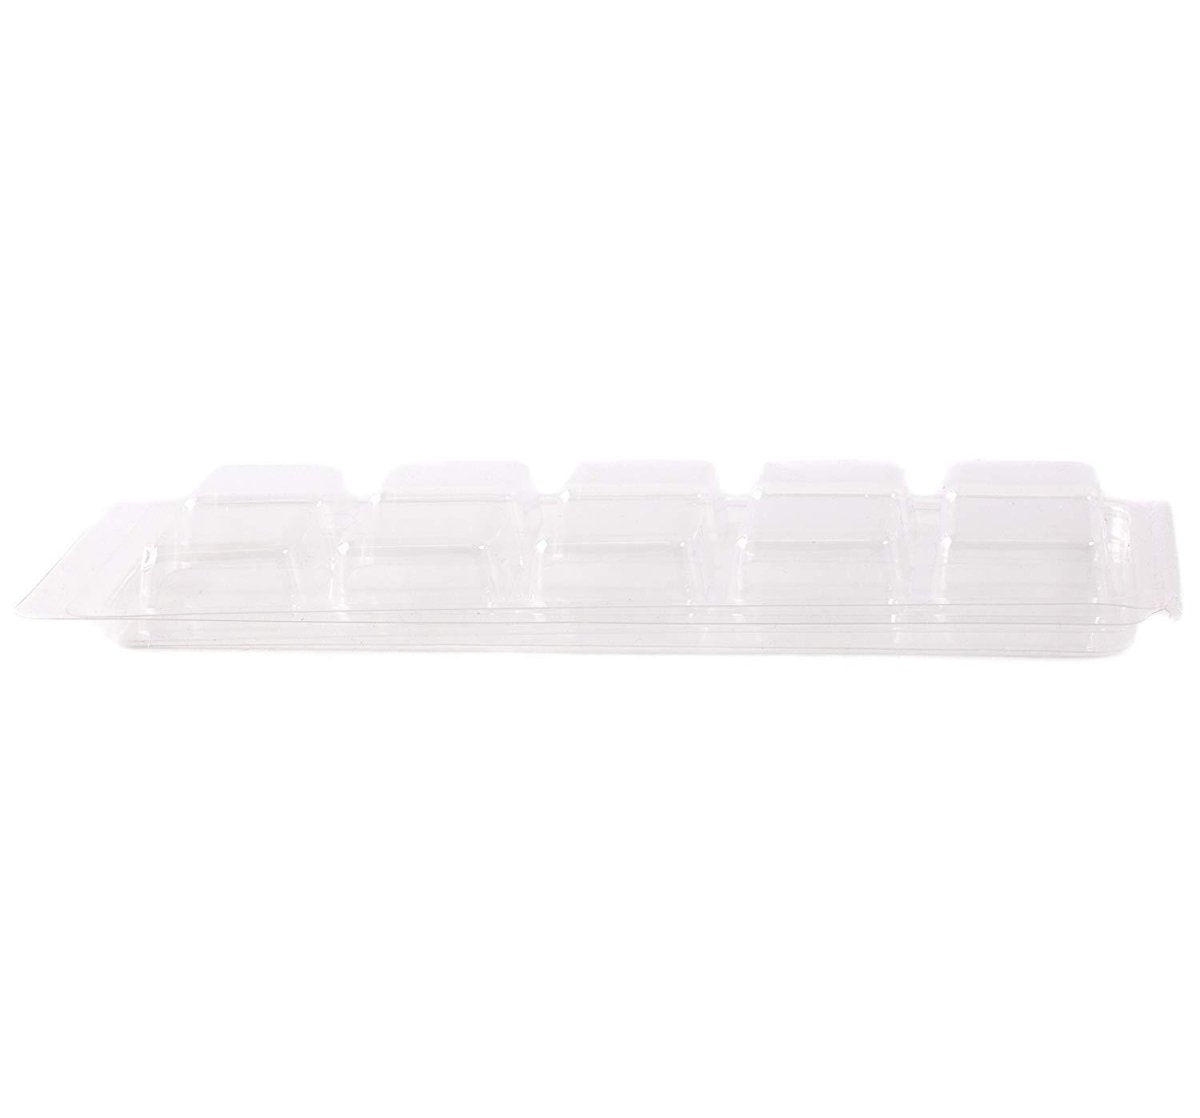 10-Cavity Wax Tart Clamshell Mould - Mystic Moments UK